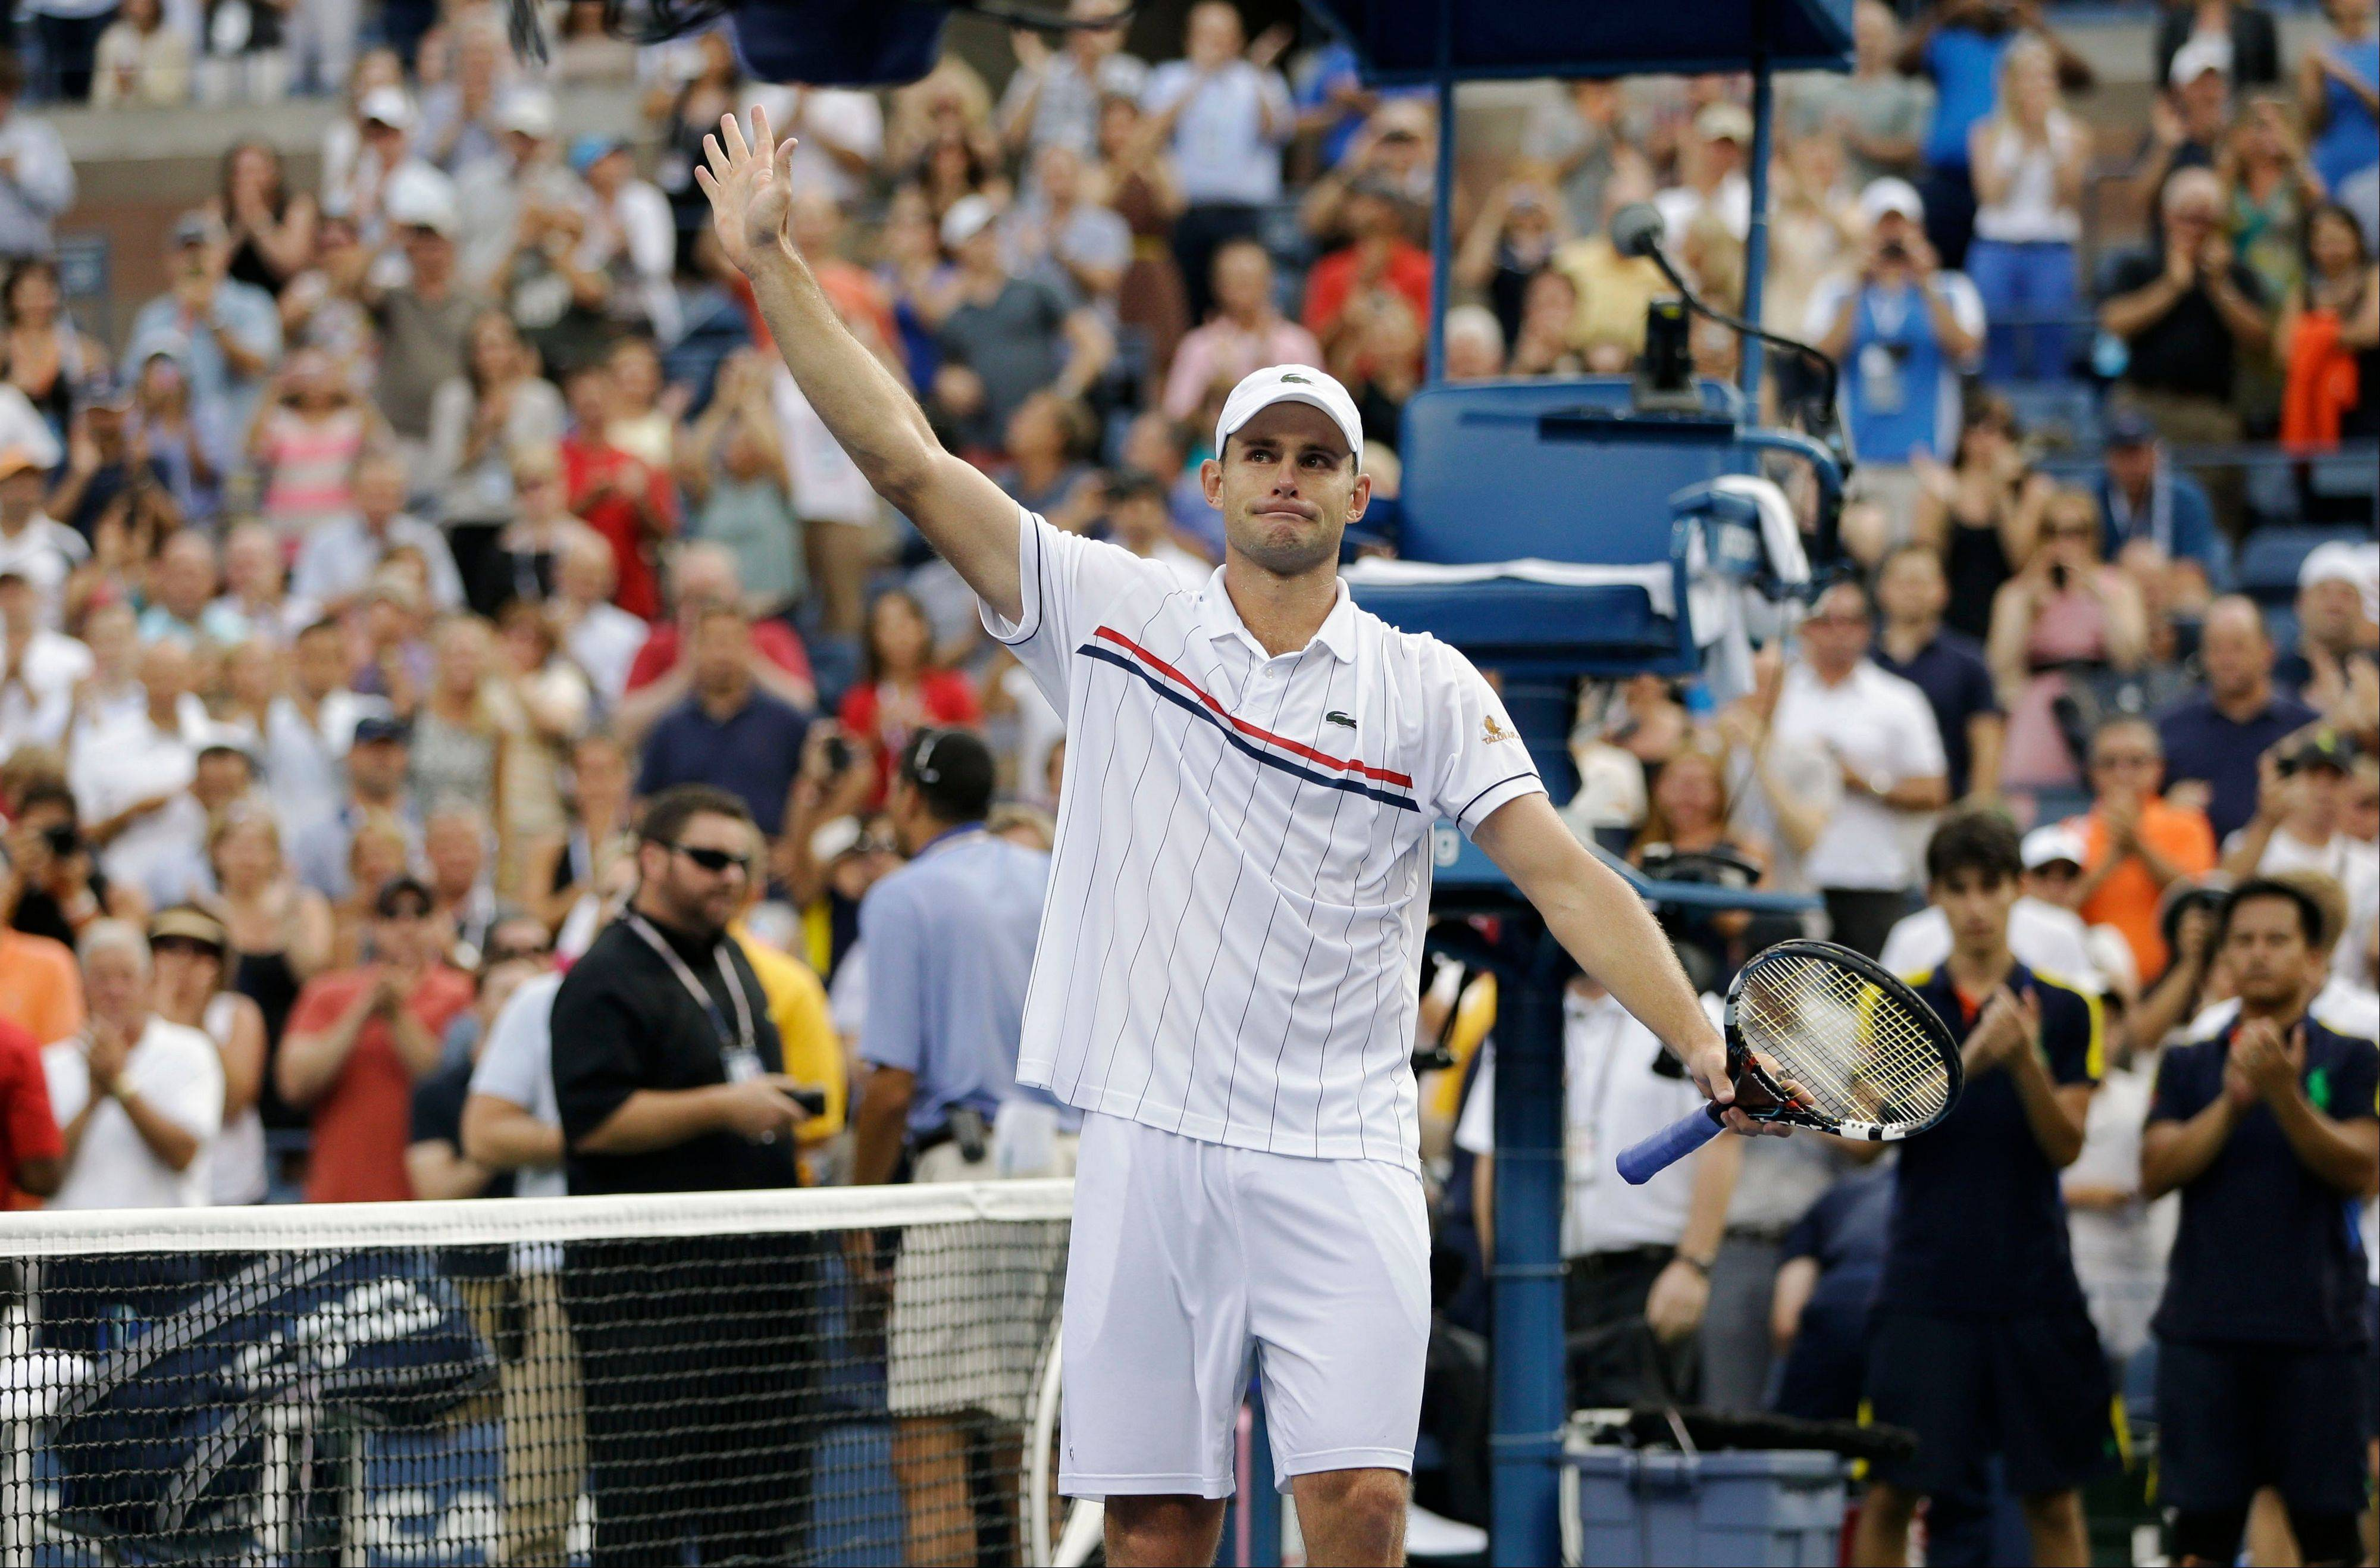 Andy Roddick waves to fans after his loss to Argentina's Juan Martin del Potro in the quarterfinals Wednesday at the U.S. Open in New York. Roddick said he would retire after the match.